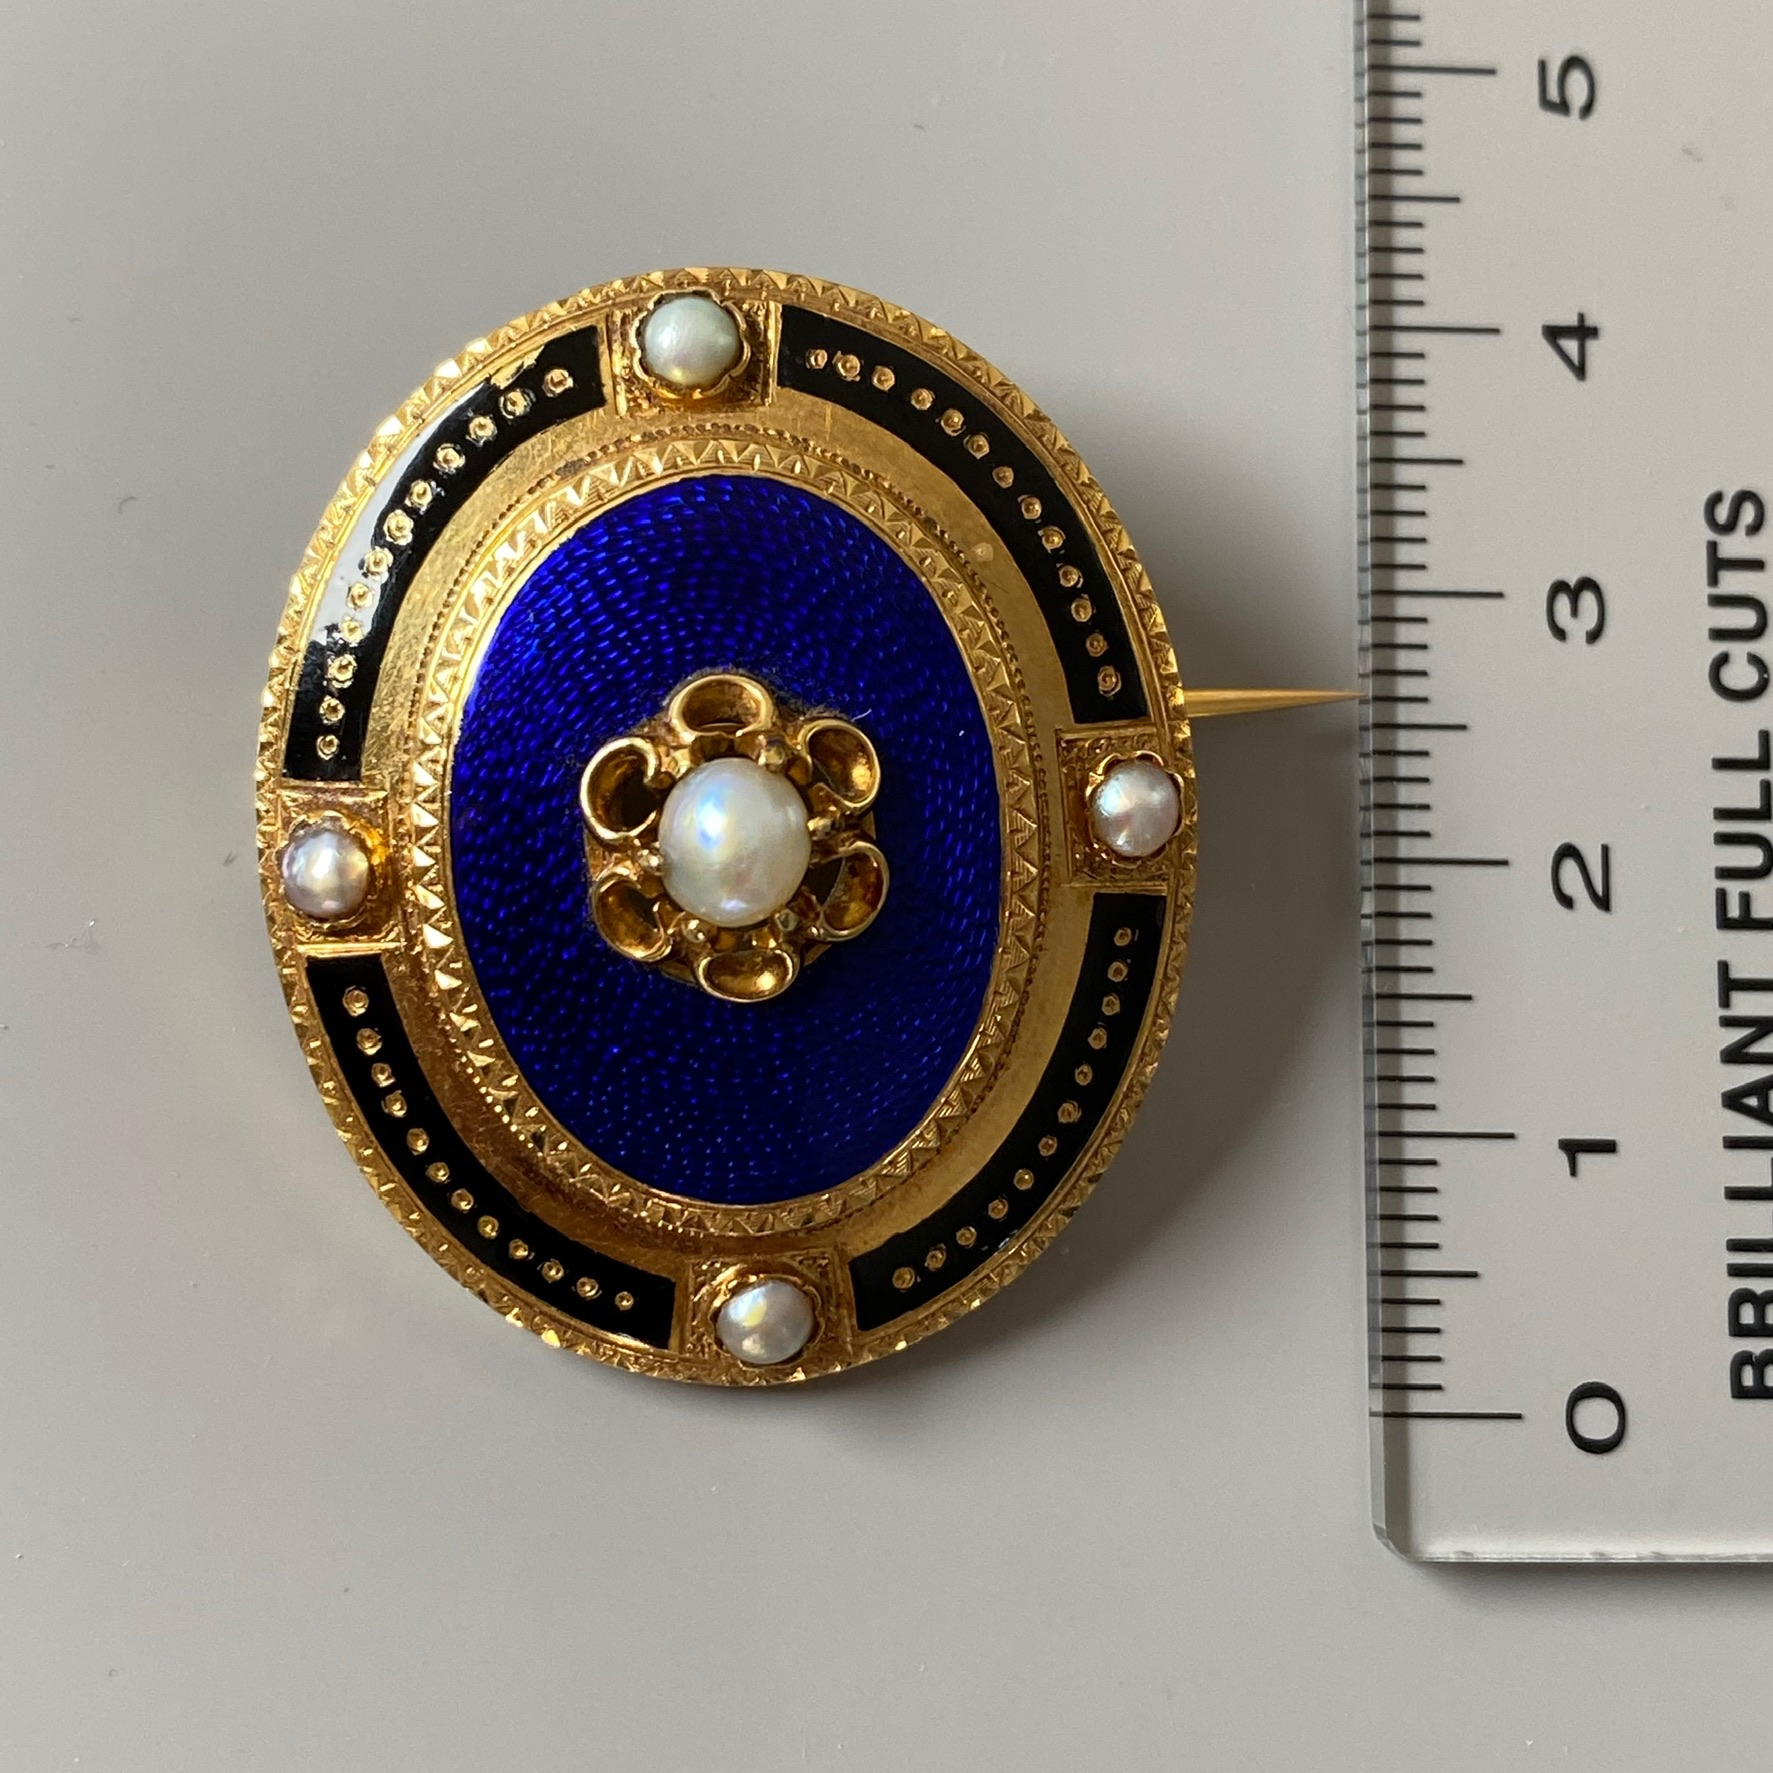 Lot 39 - Guilloche Enamel and Pearl Brooch, Victorian